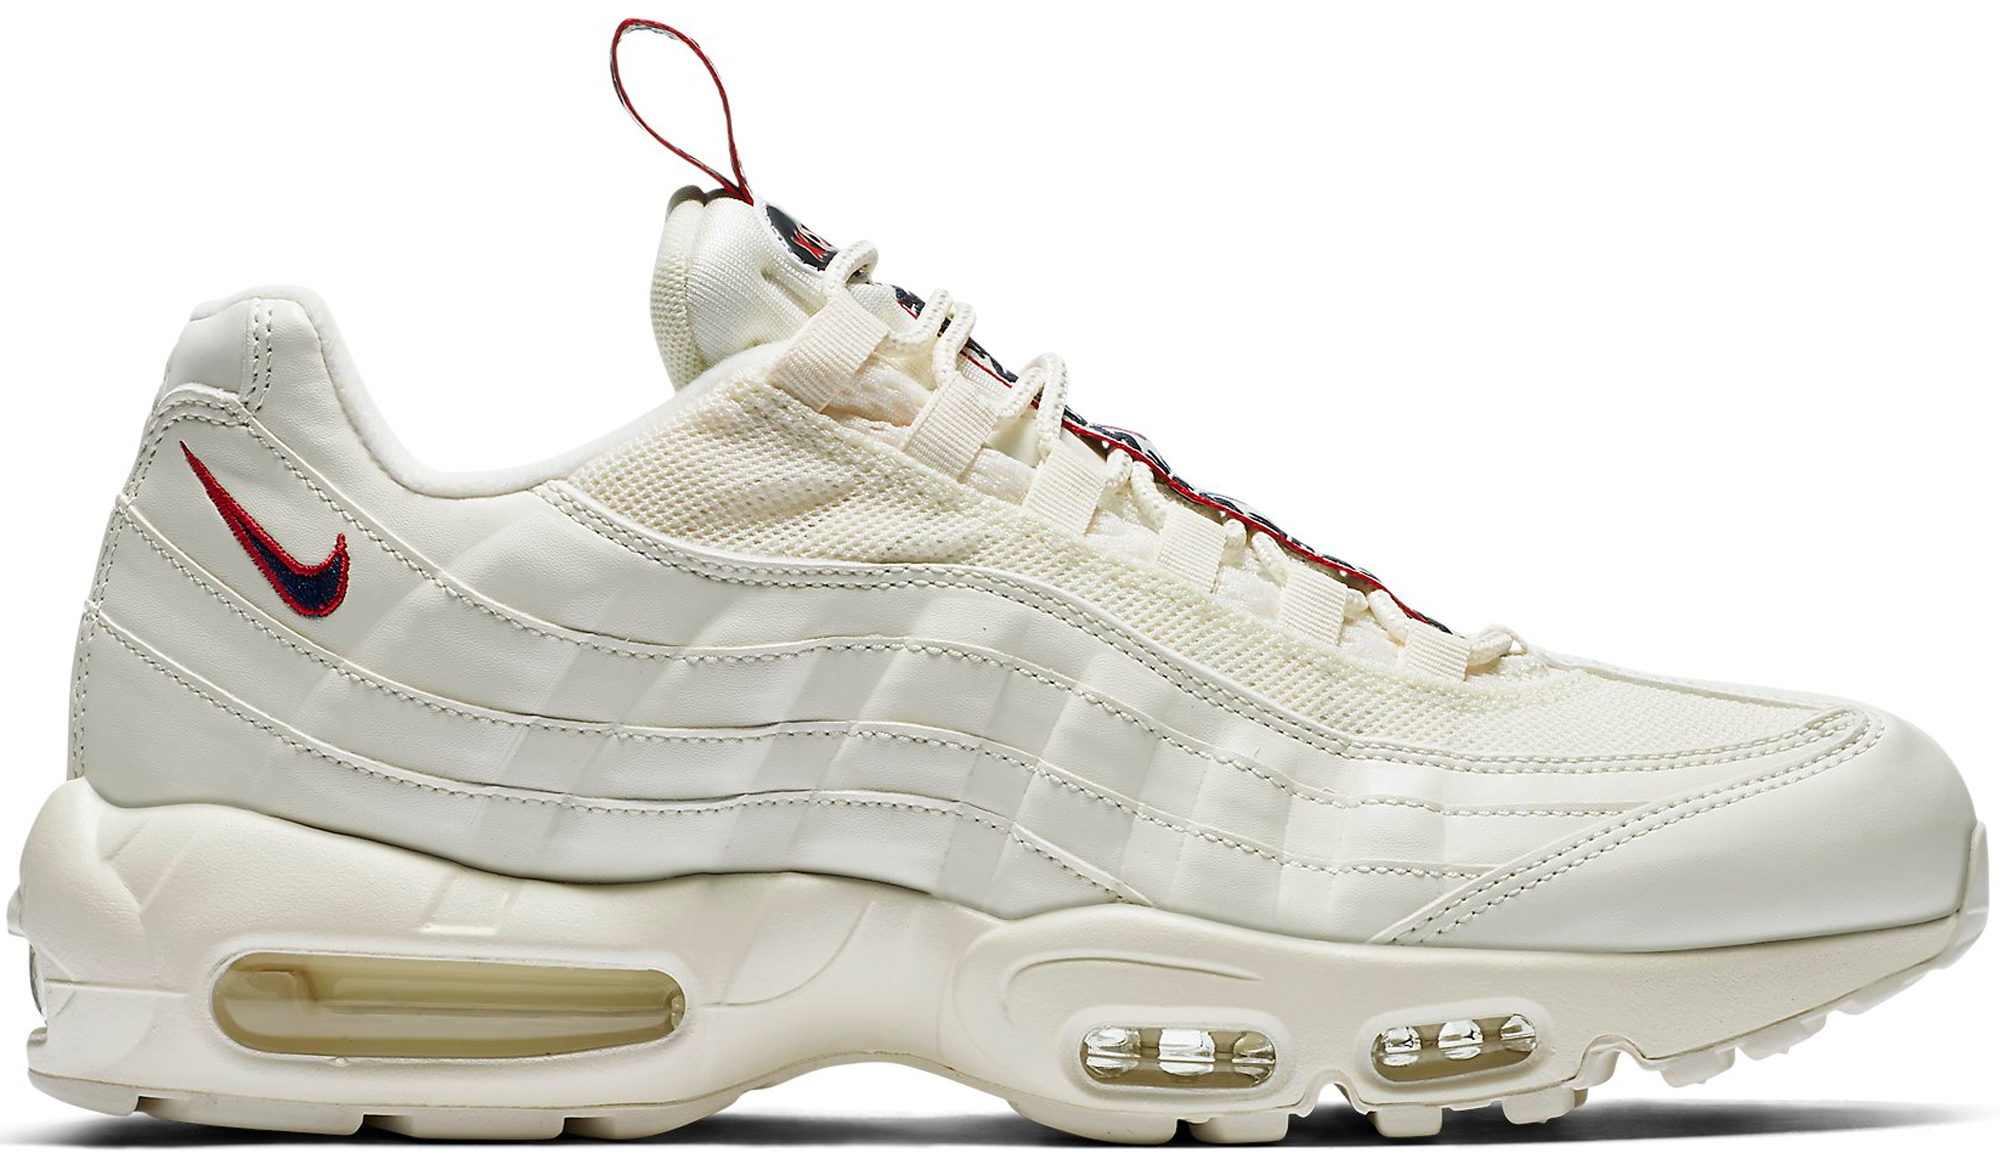 Air Max 95 Pull Tab Sail